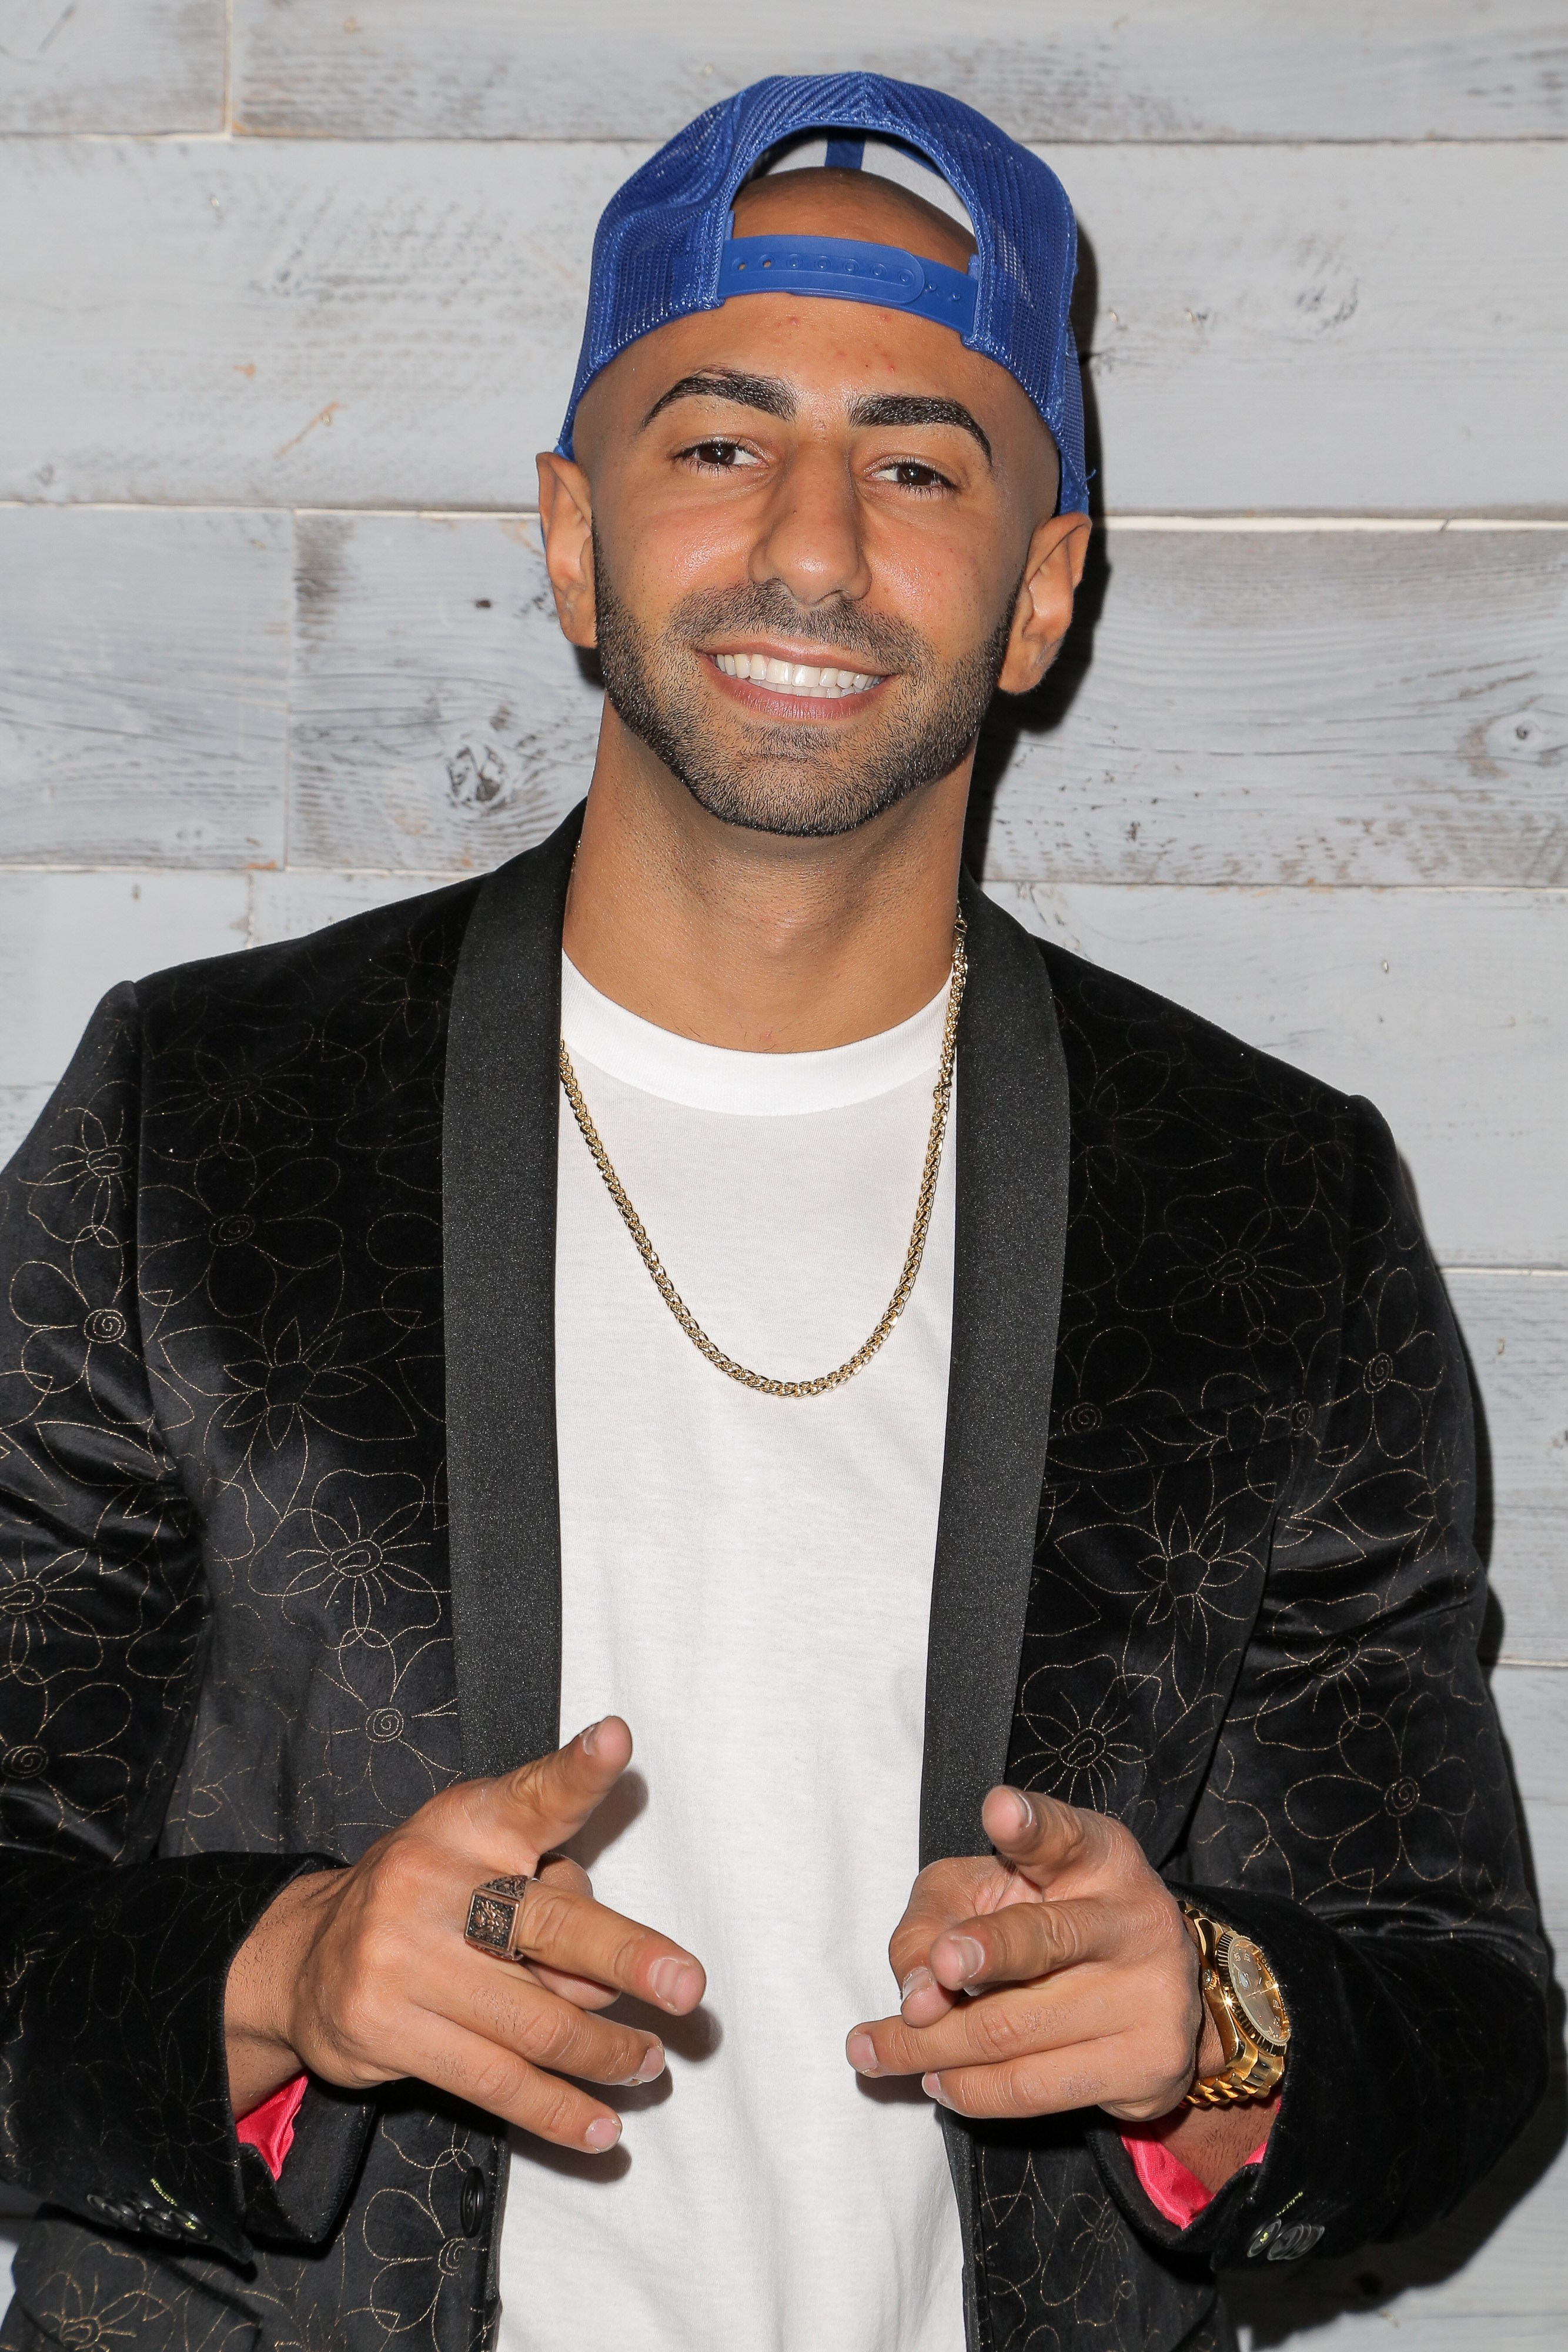 Yousef Saleh Erakat also known as Fouseytube at an event in Los Angeles on Sep. 24, 2015.